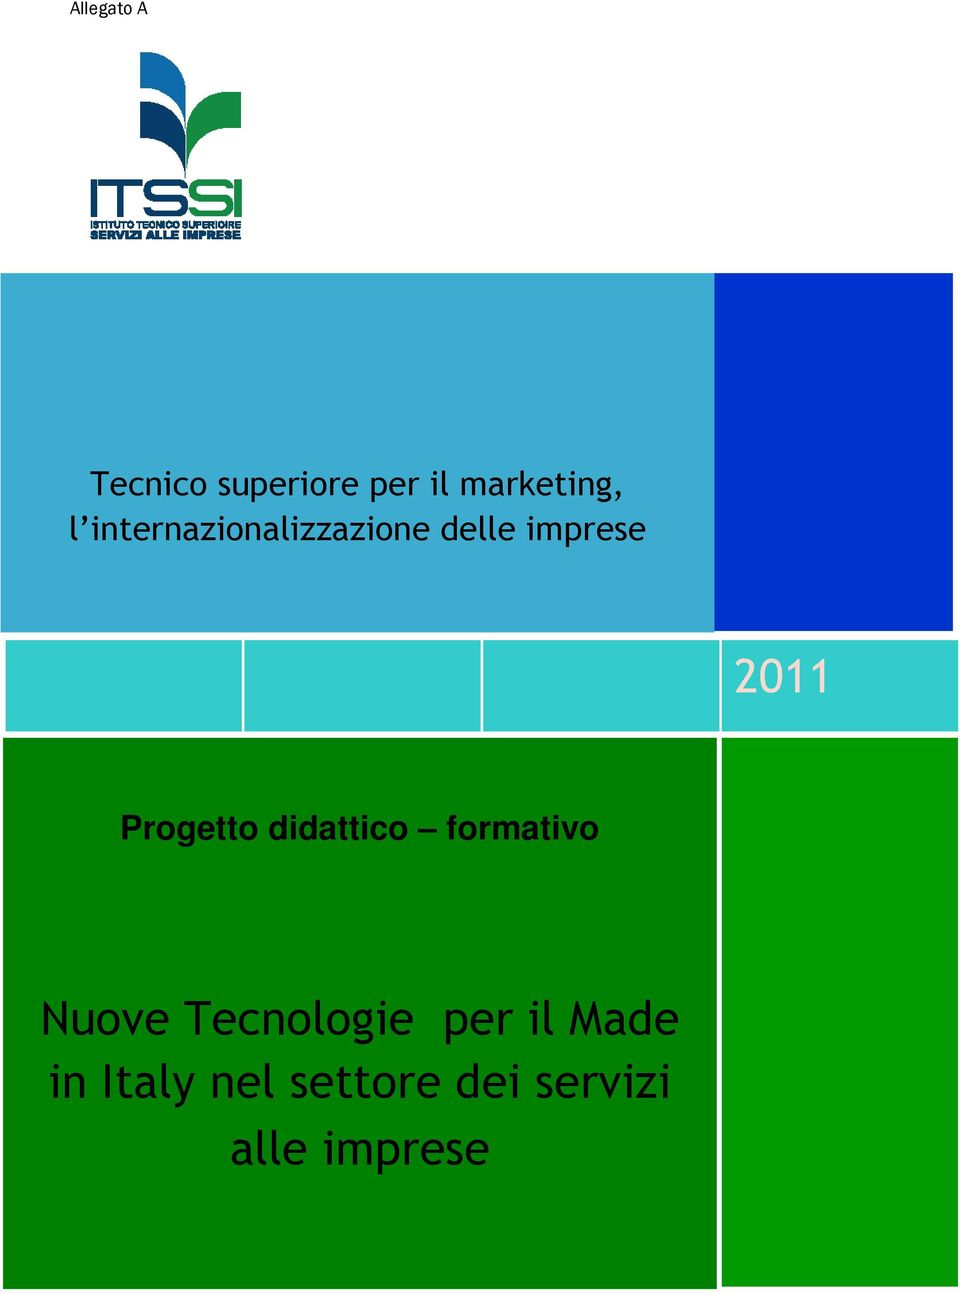 didattic frmativ Nuve Tecnlgie per il Made in Italy